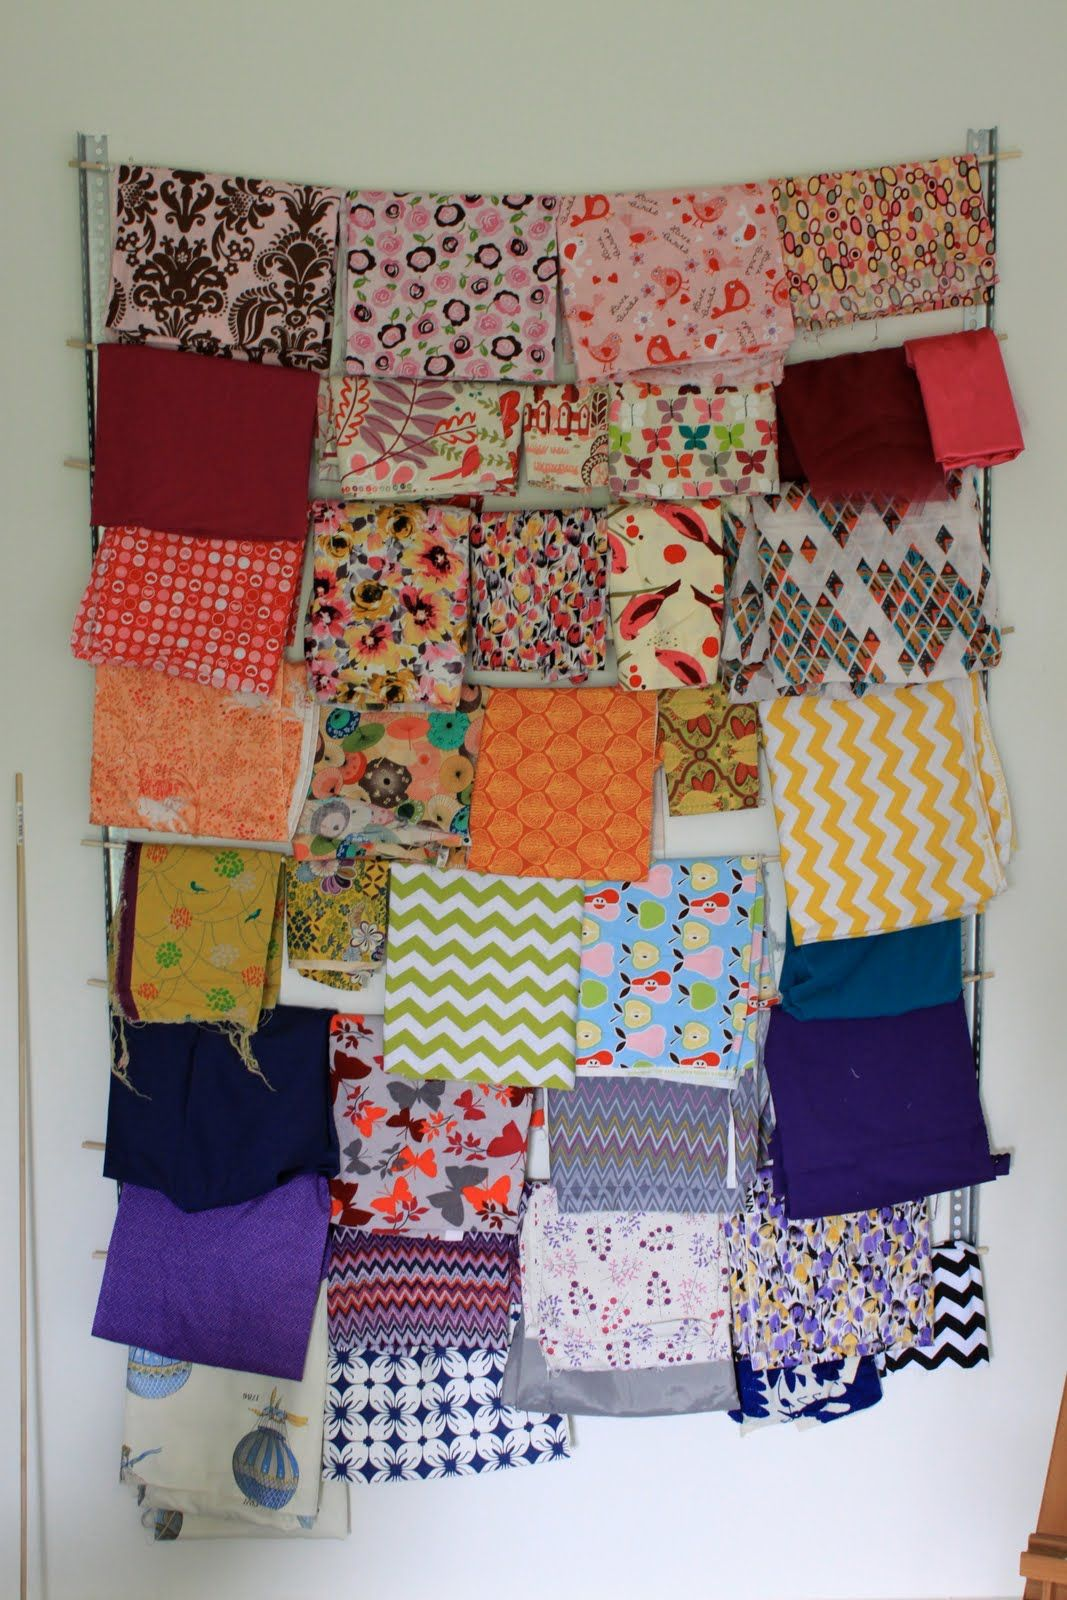 Uncategorized The Fabric Organizer craft room fabric organization corner angles and dowel rods for picking fabrics new